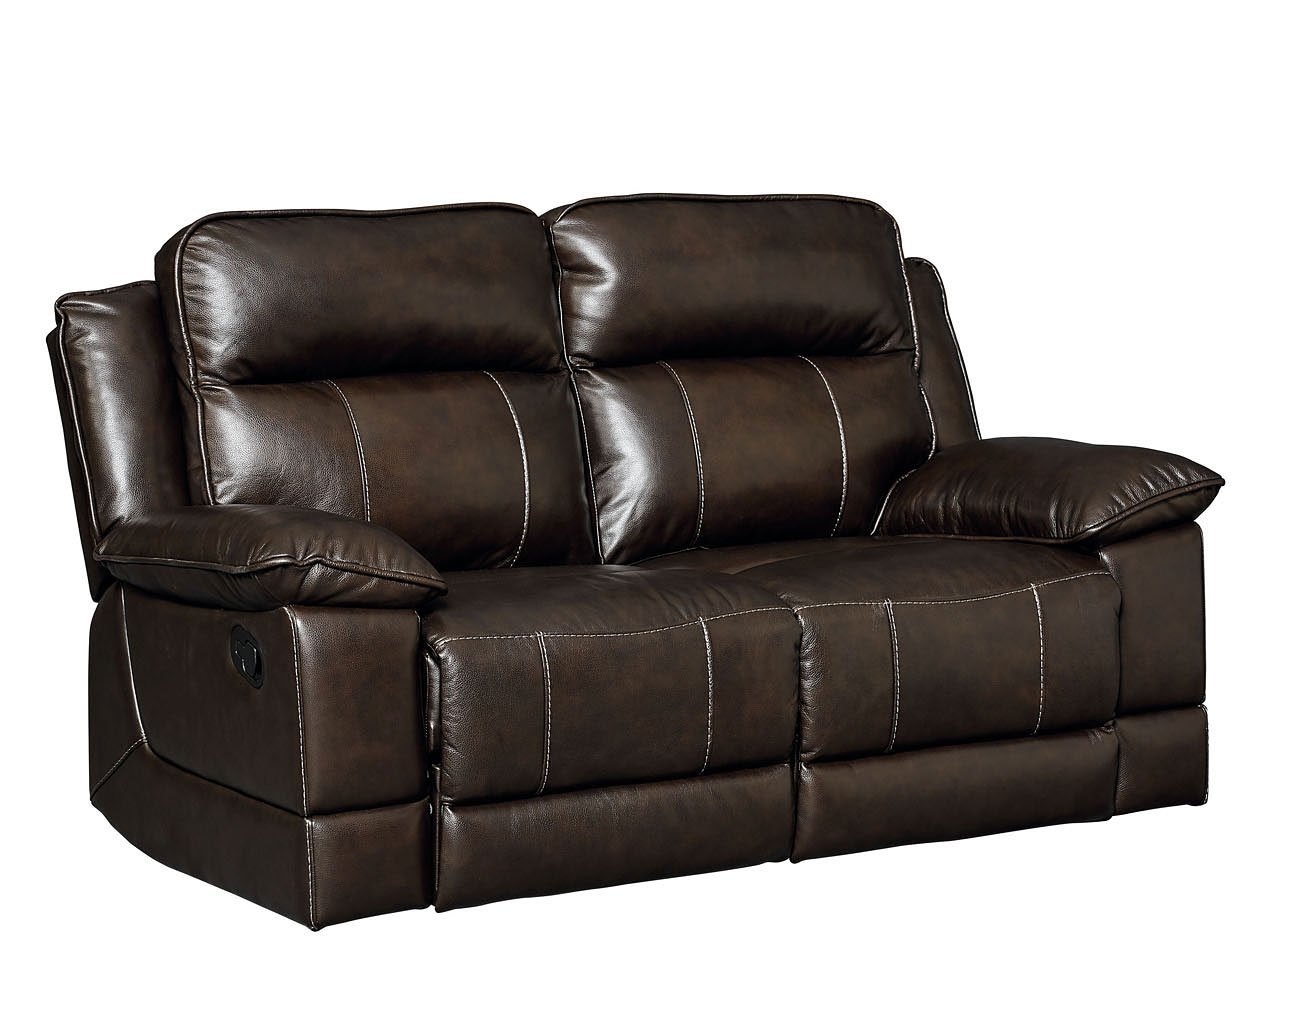 Awesome Sequoia Reclining Loveseat Gmtry Best Dining Table And Chair Ideas Images Gmtryco